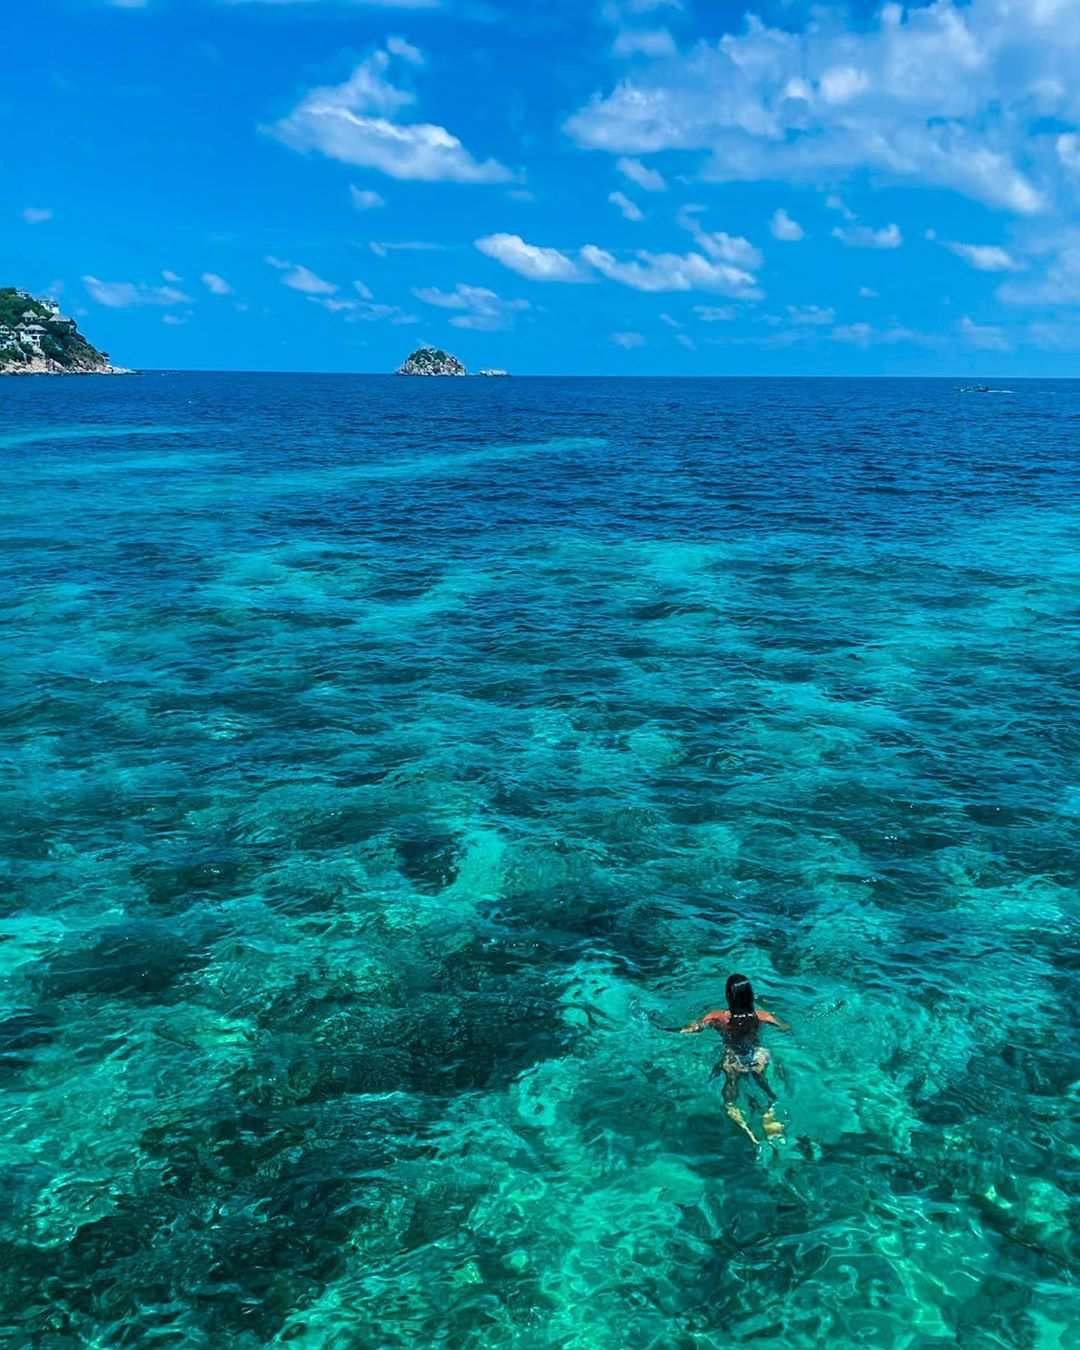 Girl swimming in the blue-green water of Koh Tao